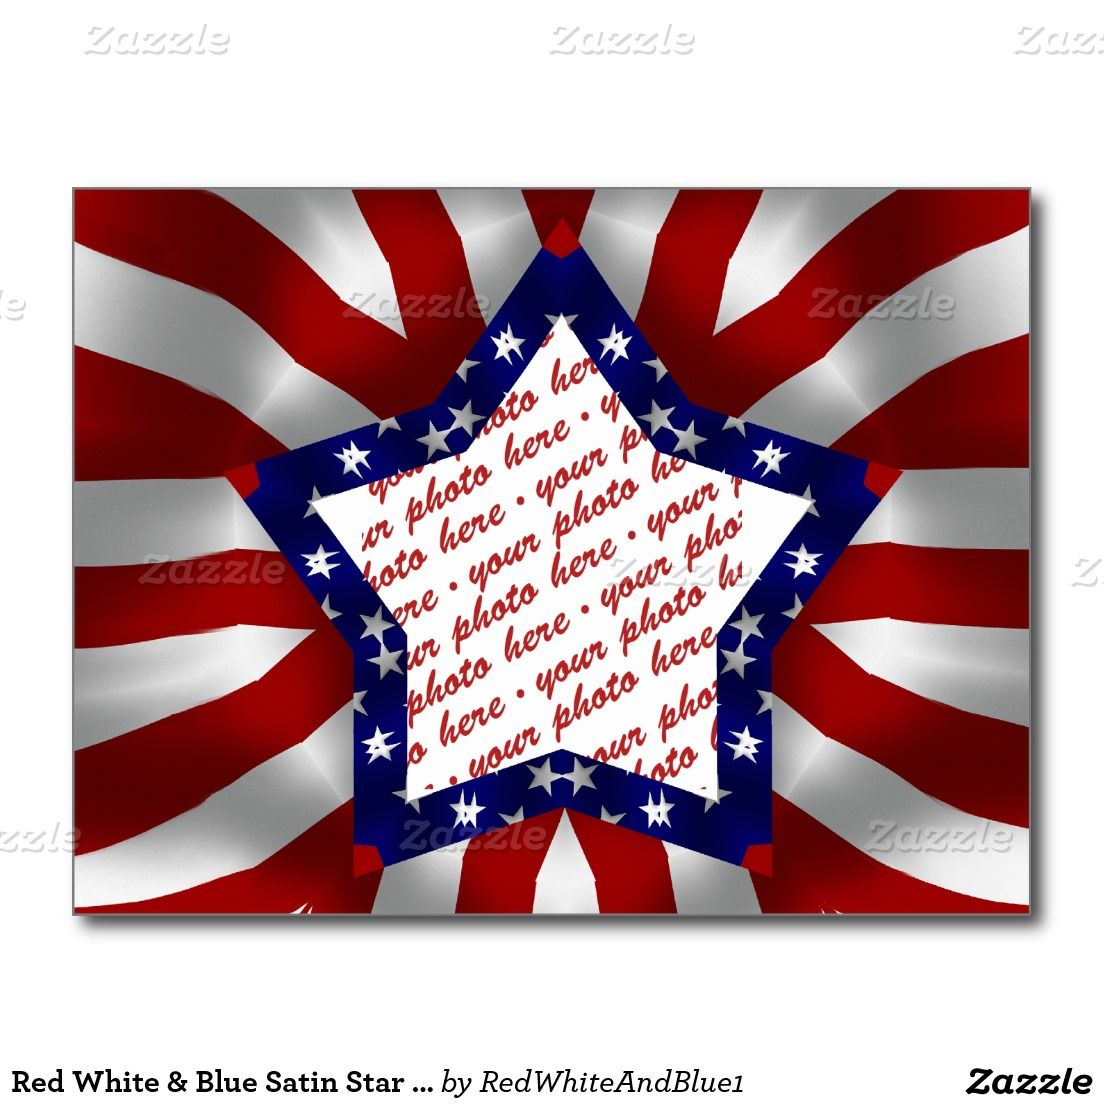 Red White & Blue Star Photo Frame Postcard by #RedWhiteAndBlue1 #Patriotic #Zazzle #Gravityx9